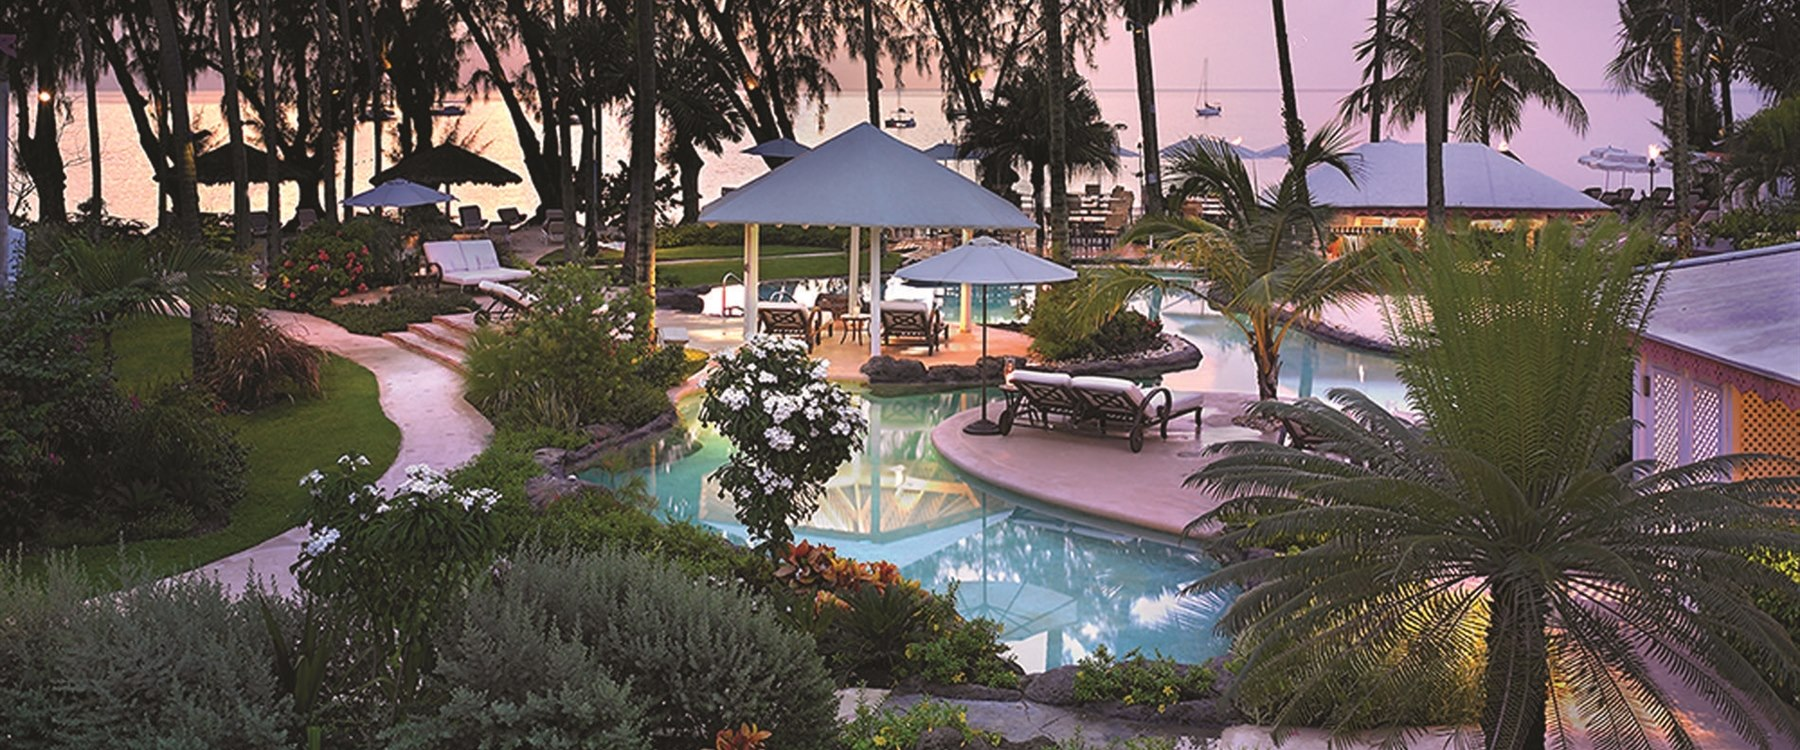 Pool in the evening at Colony Club by Elegant Hotels